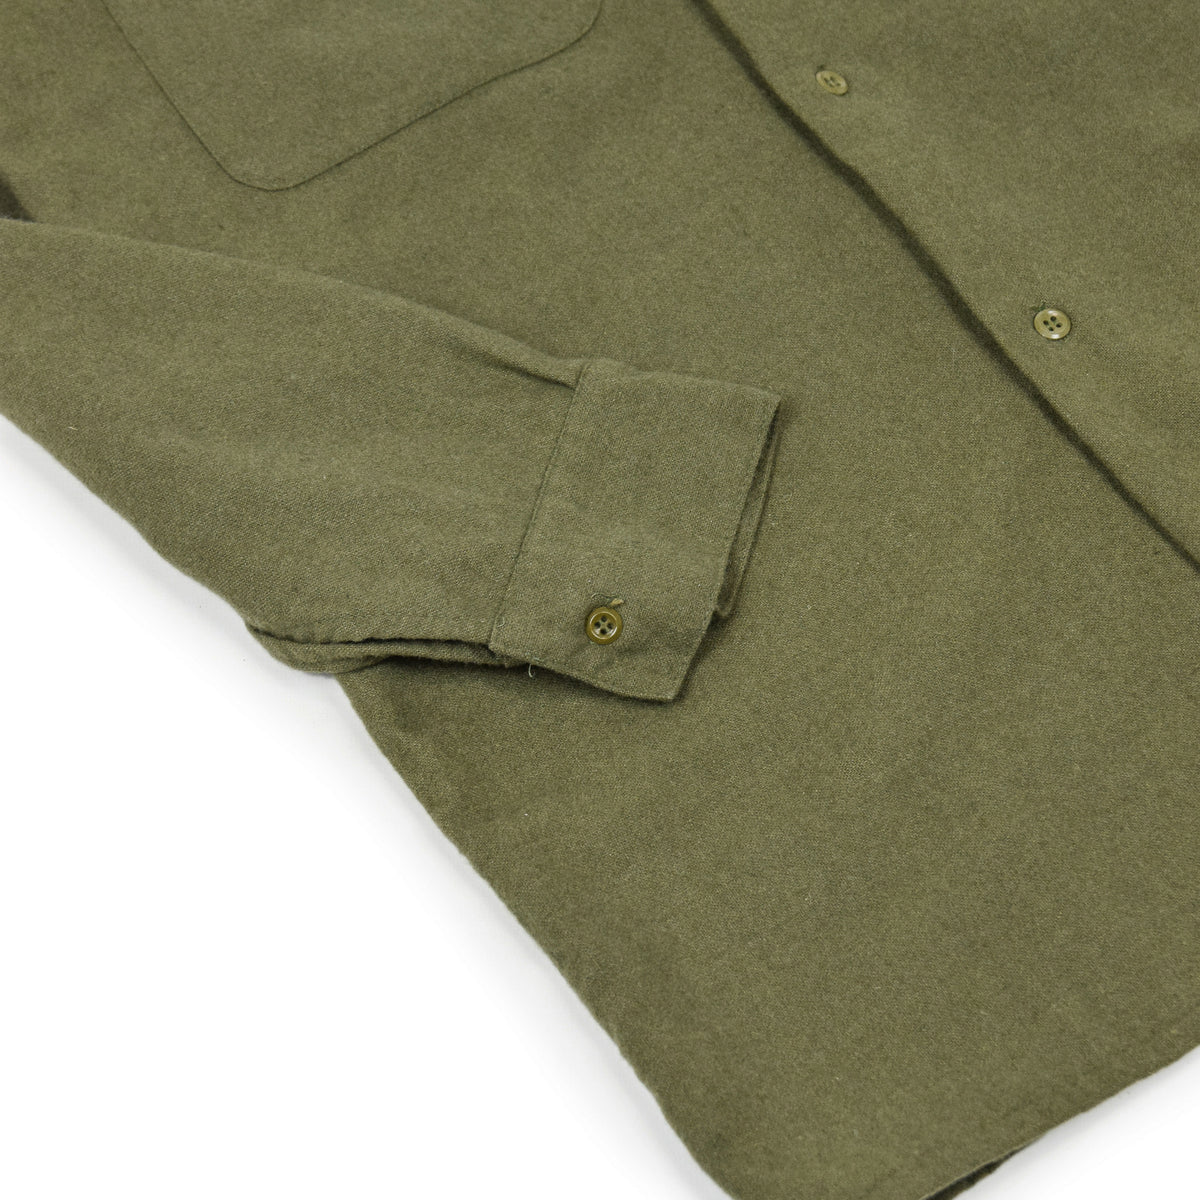 Vintage 80s British Army Mans Combat Wool Shirt Olive Green S CUFF